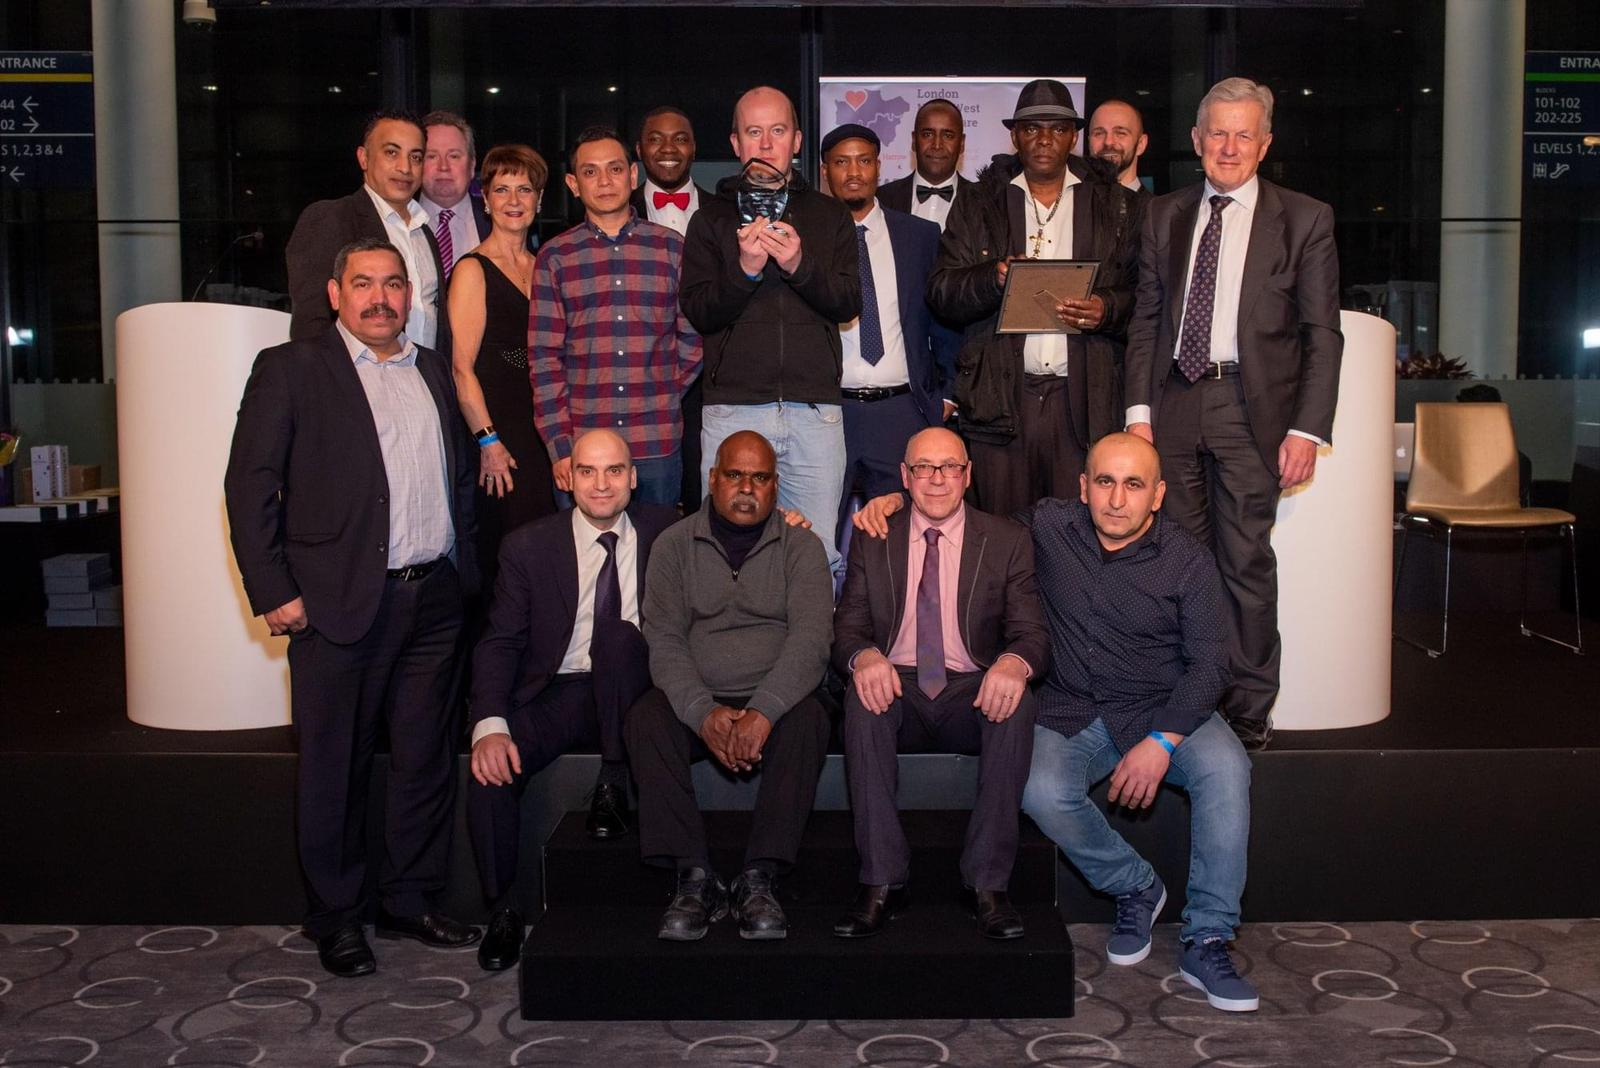 The waste team, which includes waste porters and managers, attended the Trust's Staff Excellence Awards to collect the 'Unsung Hero' award.